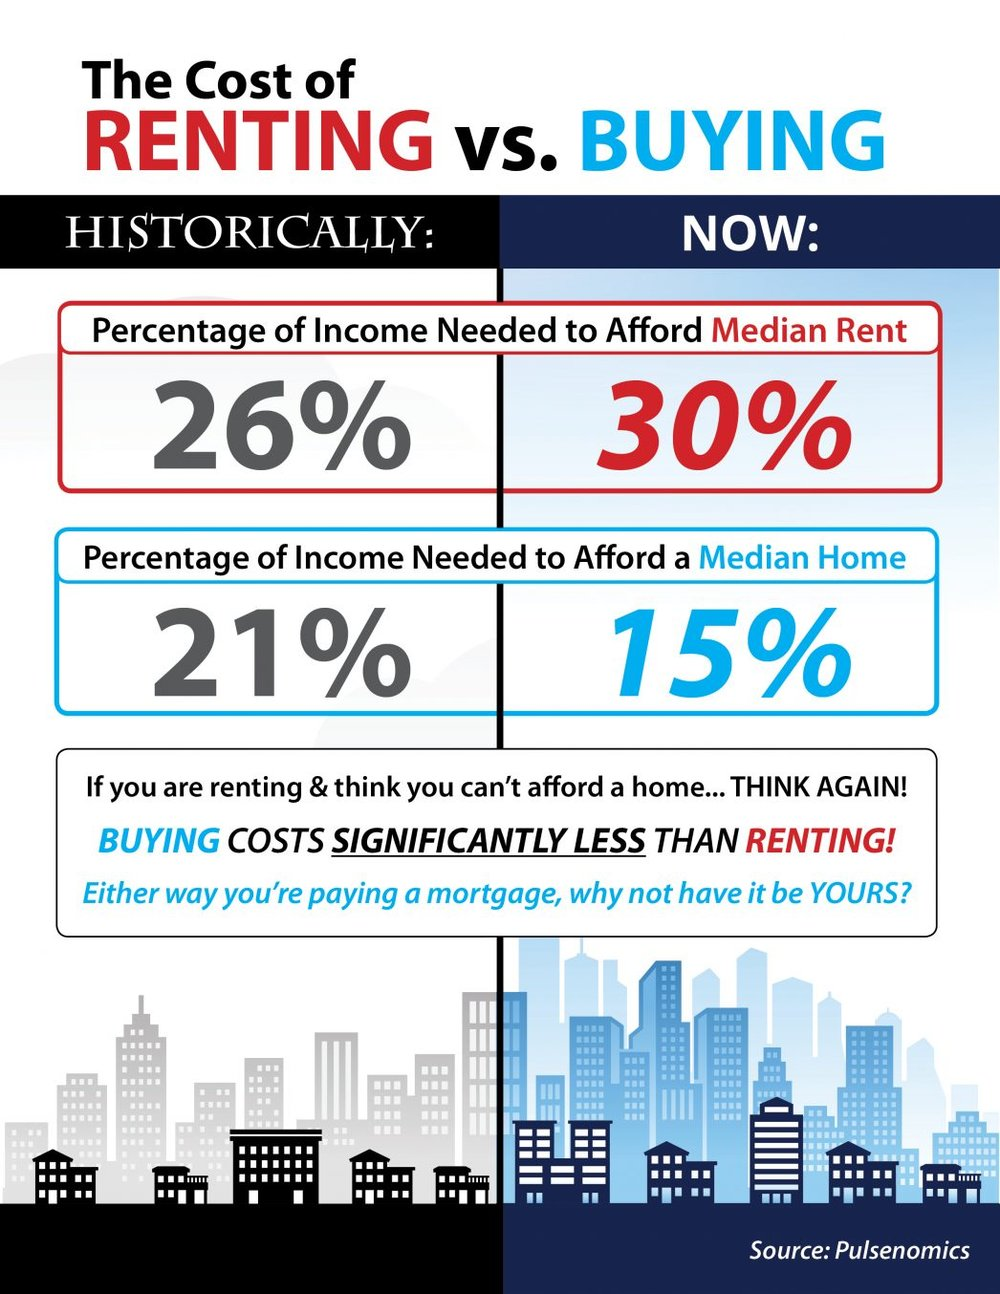 Some Highlights: 1) Historically, the choice between renting or buying a home has been a close decision. 2) Looking at the percentage of income needed to rent a median-priced home today (30%), vs. the percentage needed to buy a median-priced home (15%), the choice becomes obvious. 3) Every market is different. Before you renew your lease again, find out if you could use your housing costs to own a home of your own!